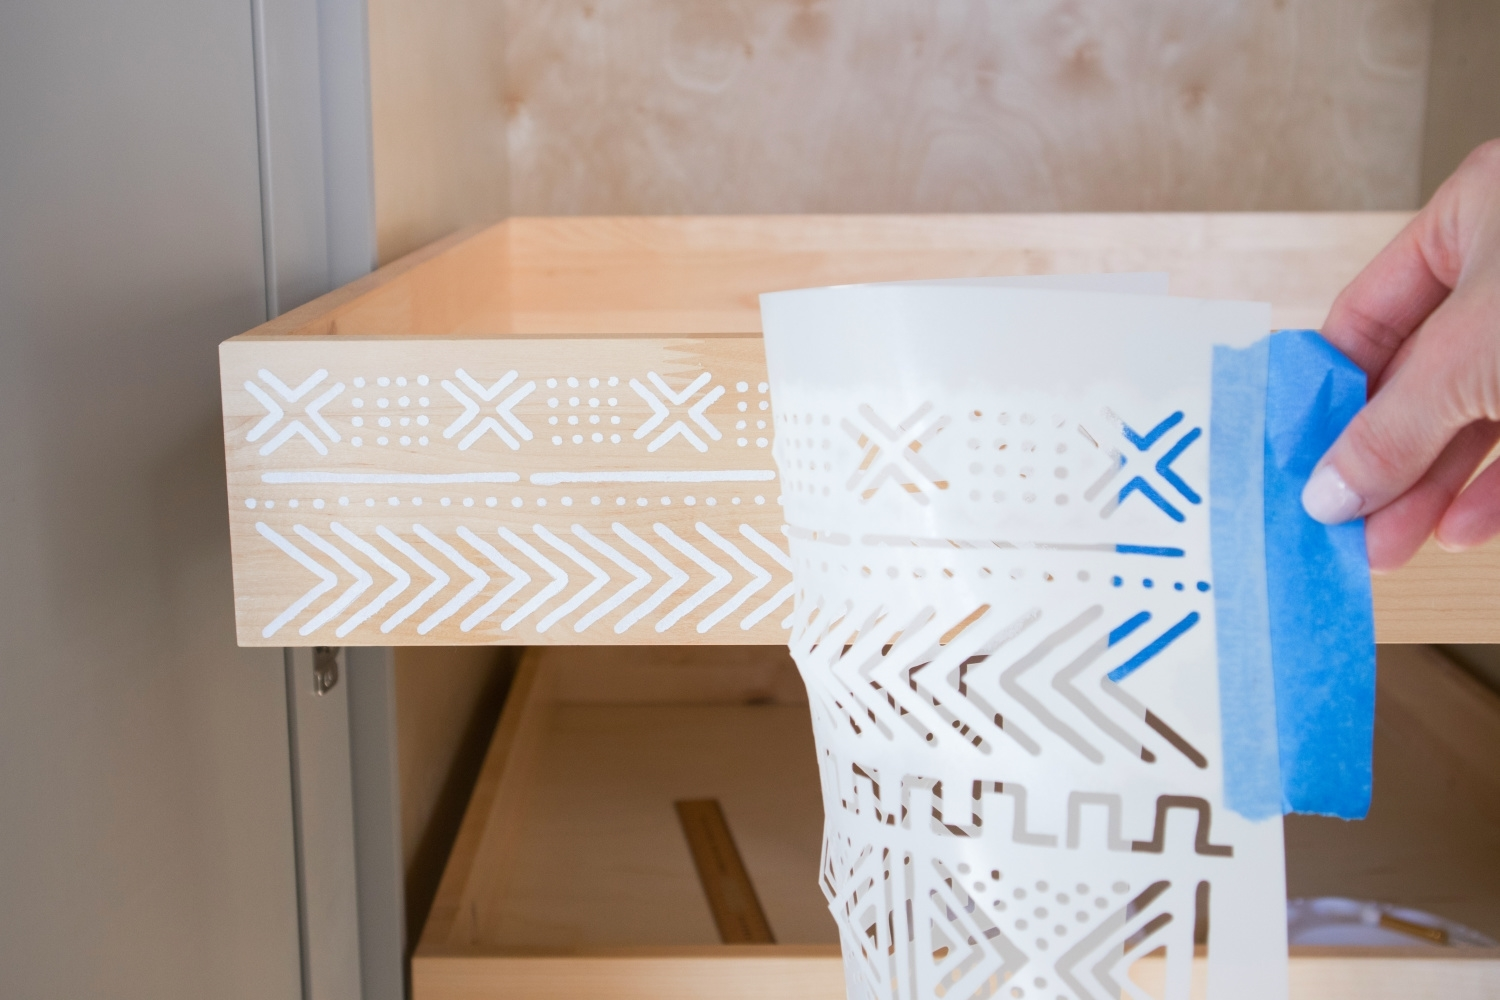 Use a stencil and acrylic paint to decorate drawers